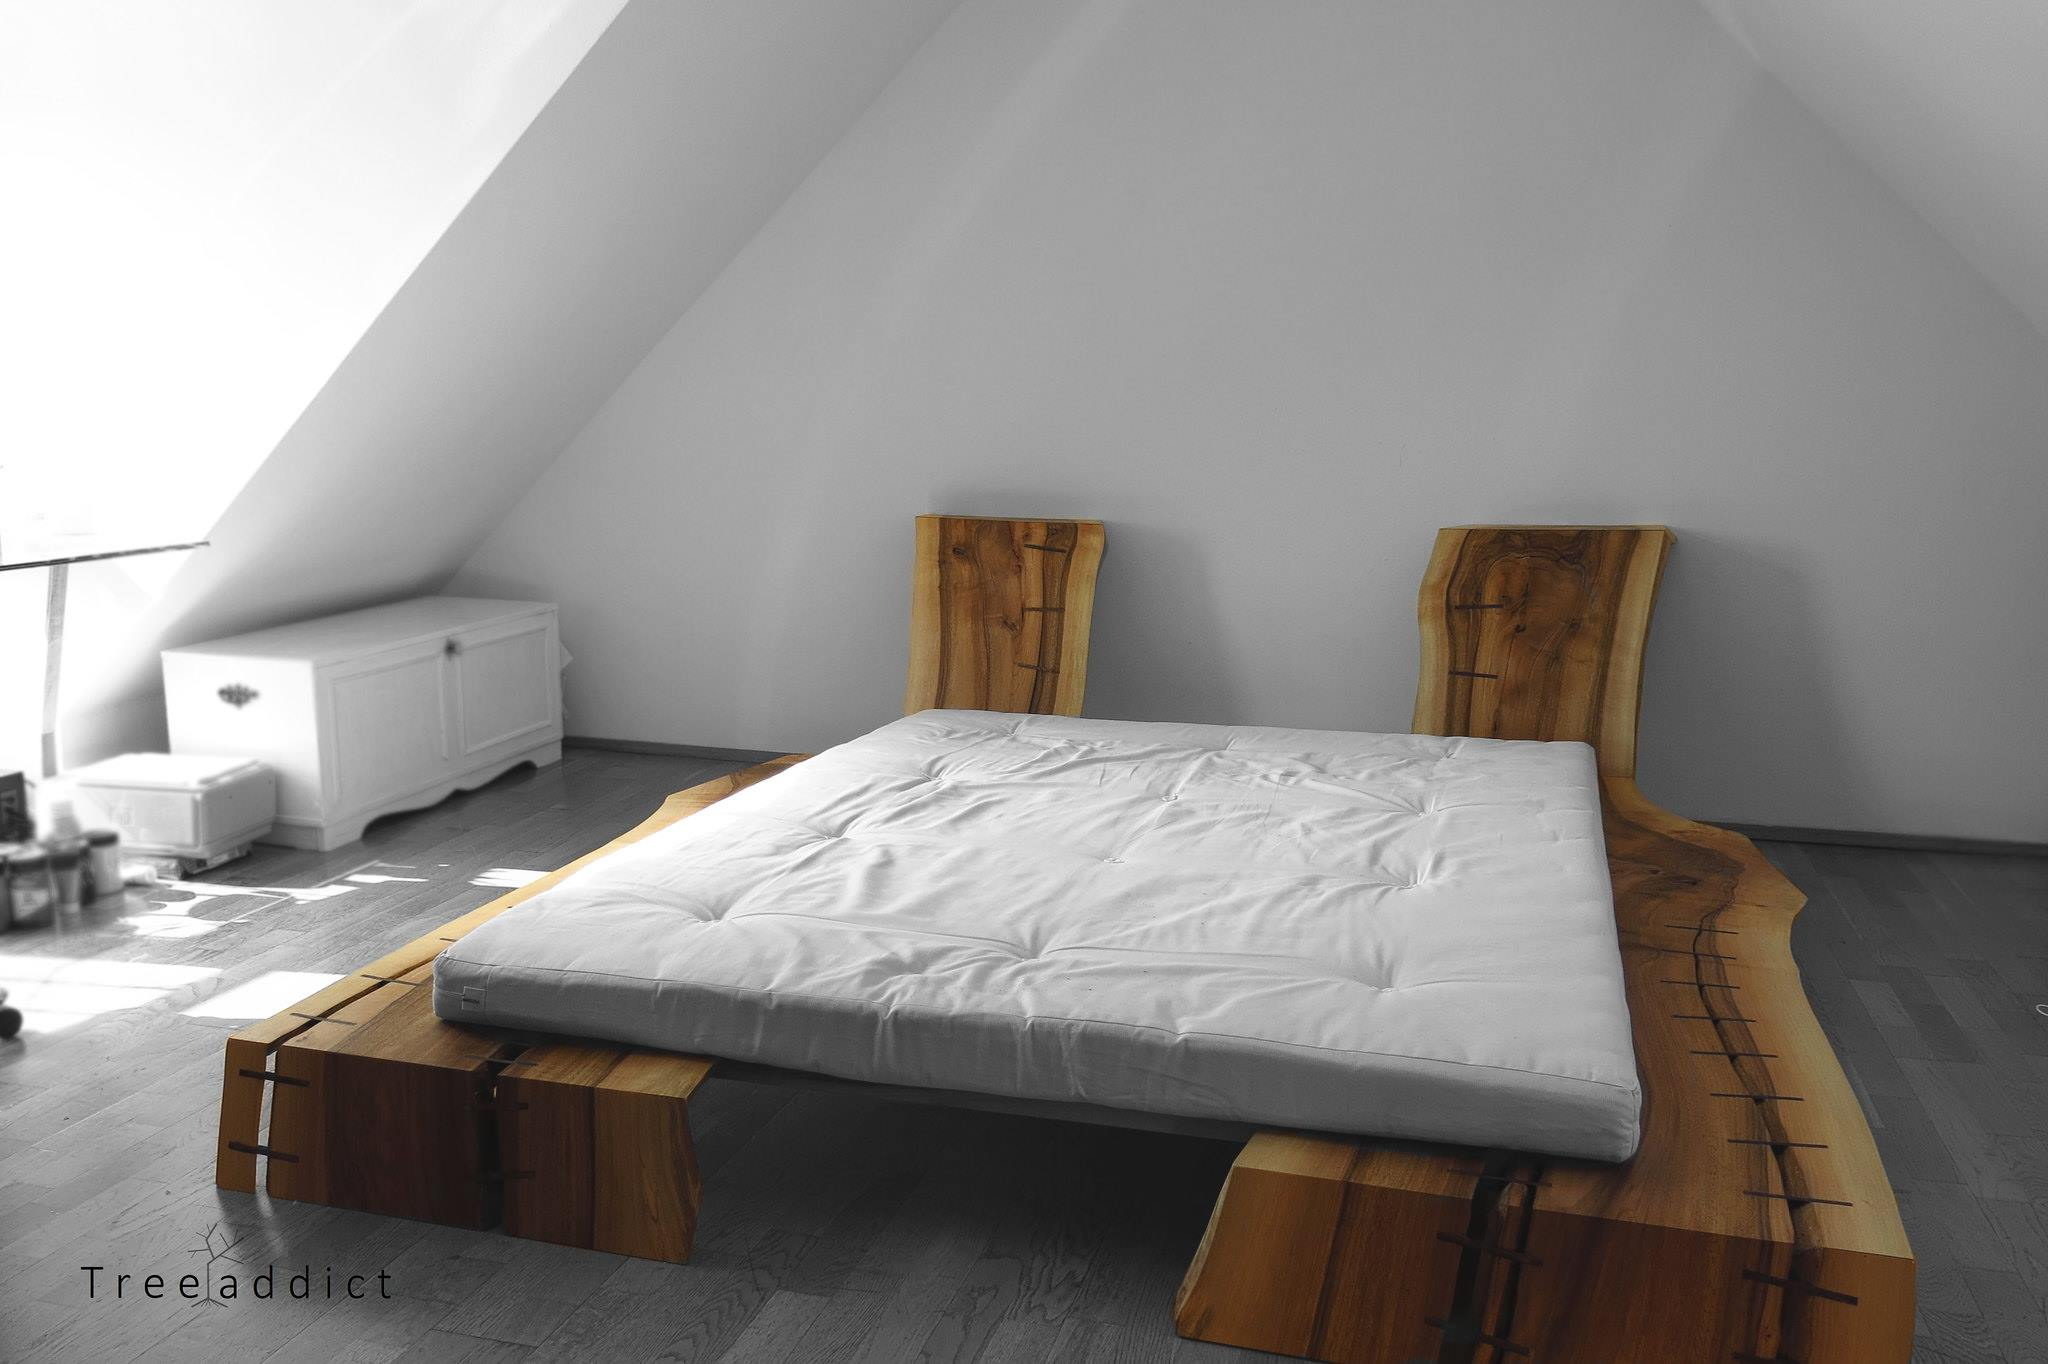 image - Futon Beds: Reasons Why they are Popular